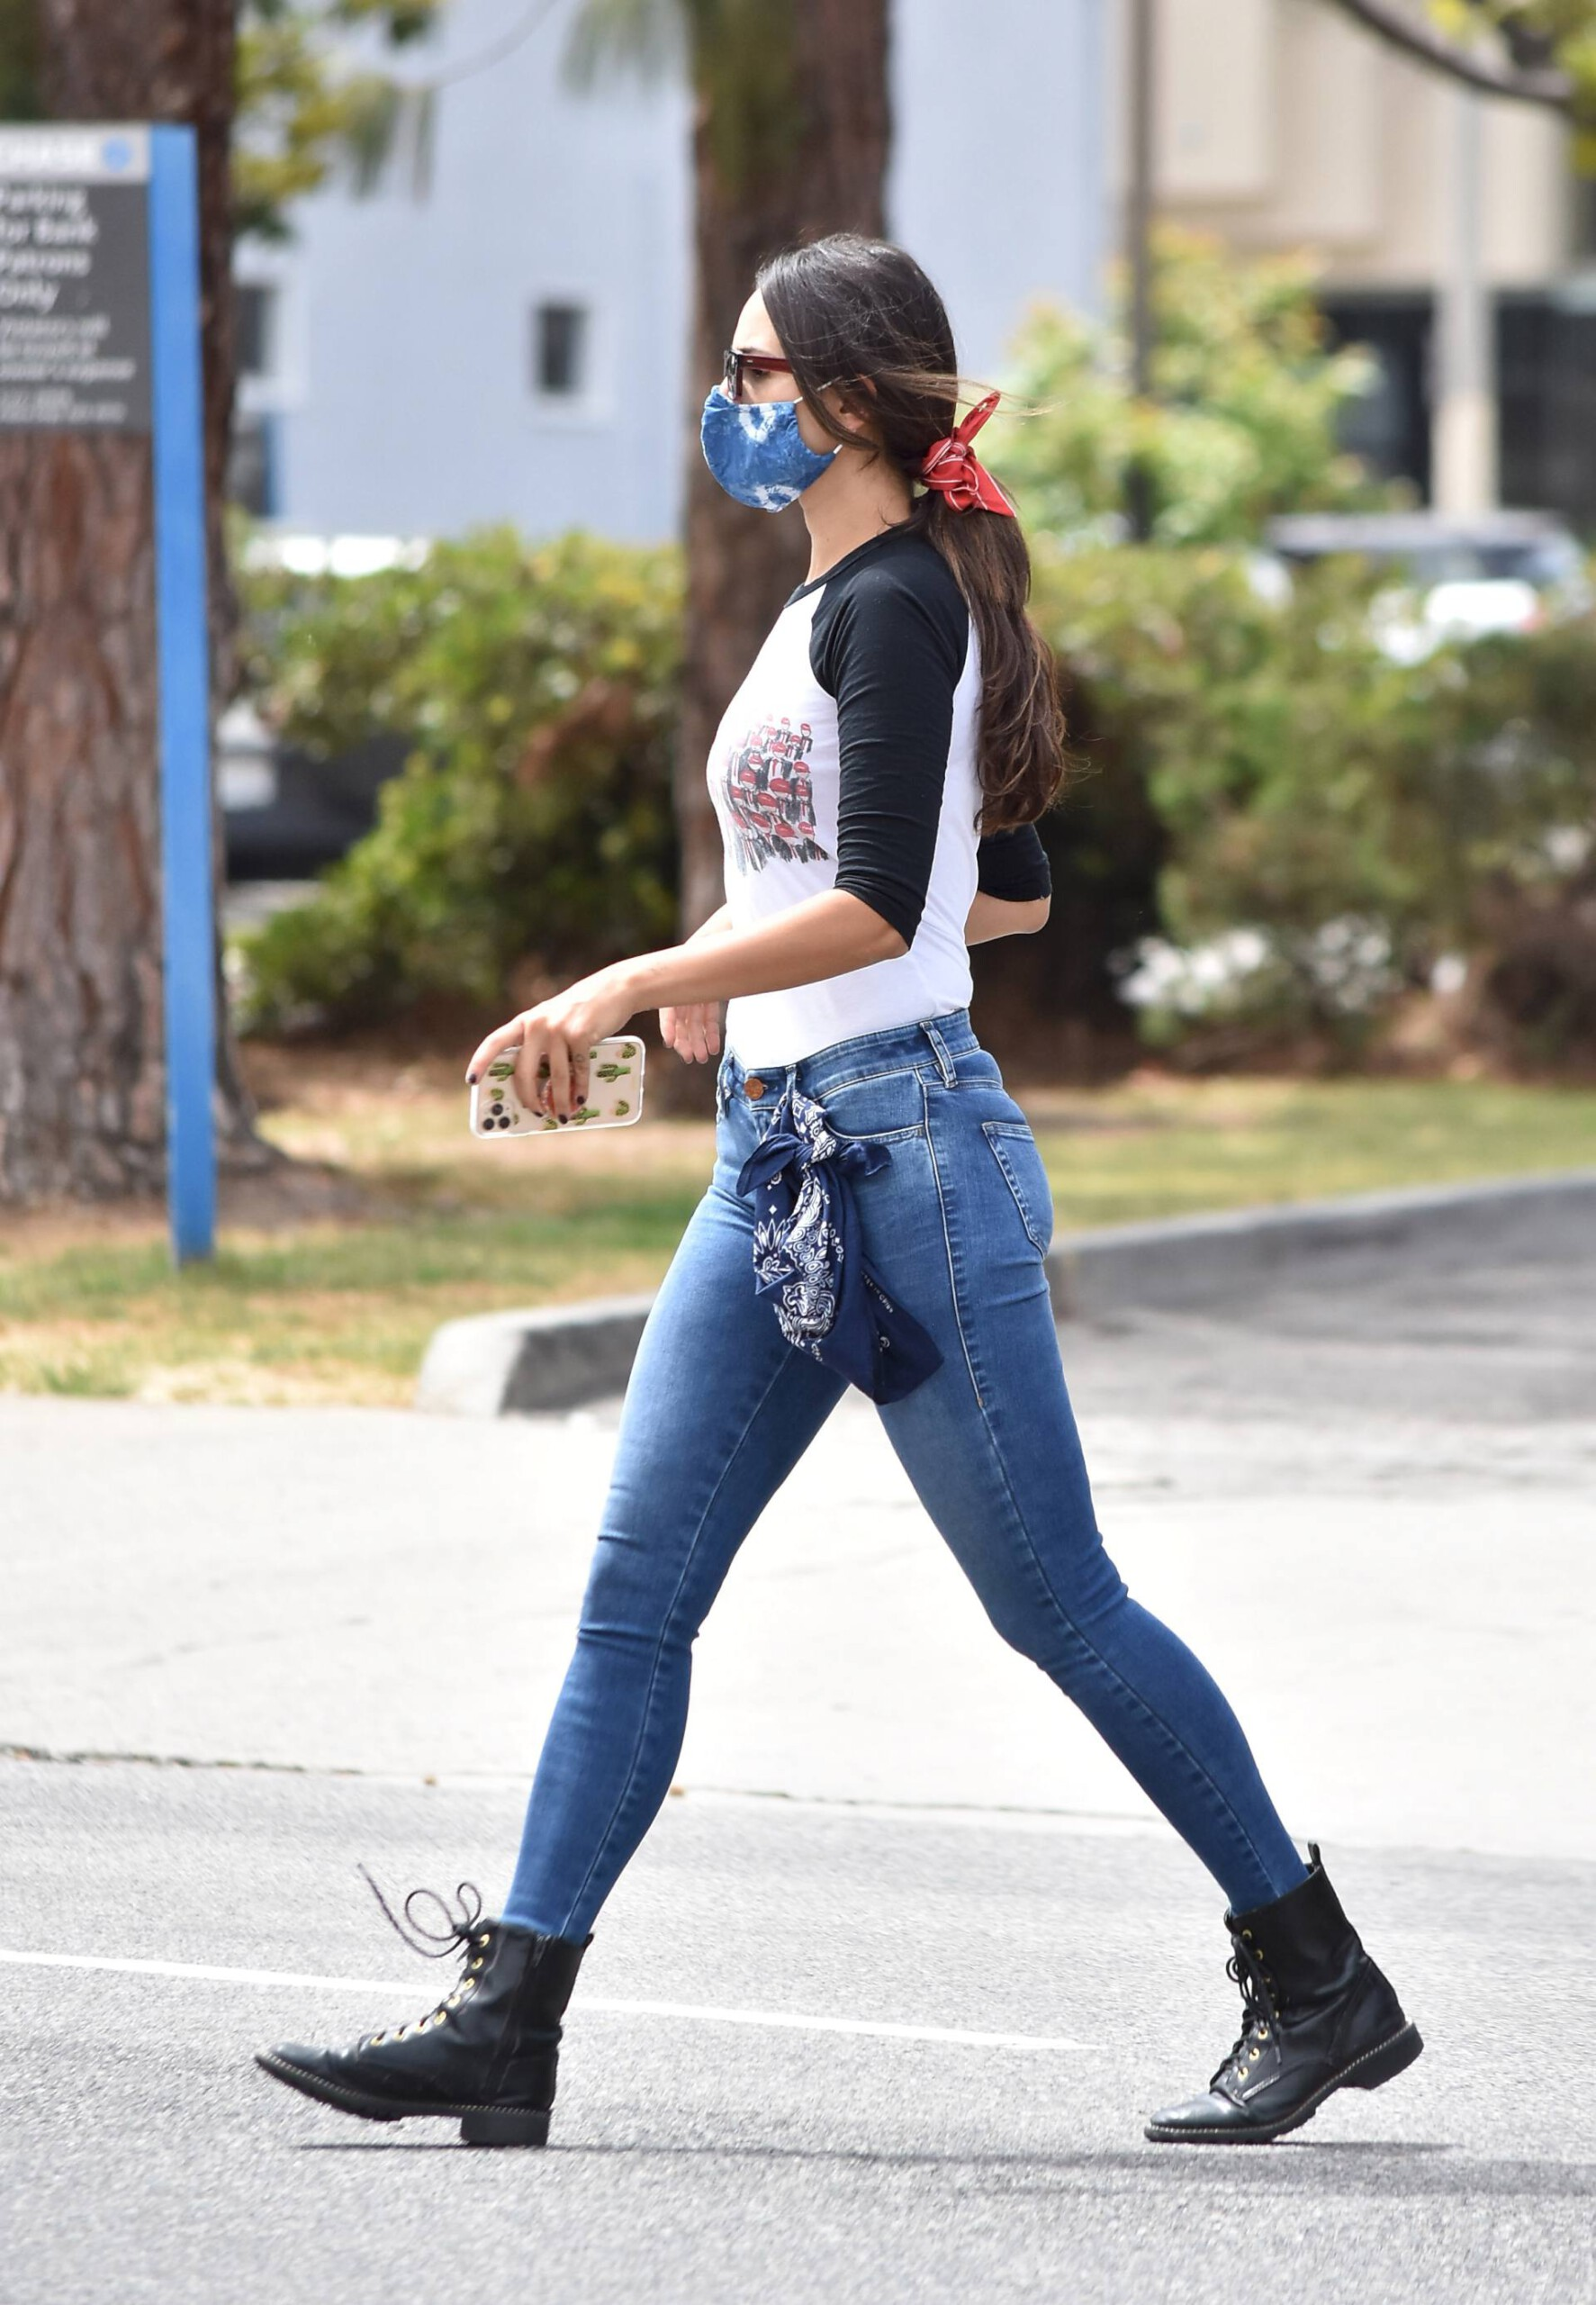 Eiza Gonzalez – Sexy In Tight Jeans Out In Los Angeles 0004